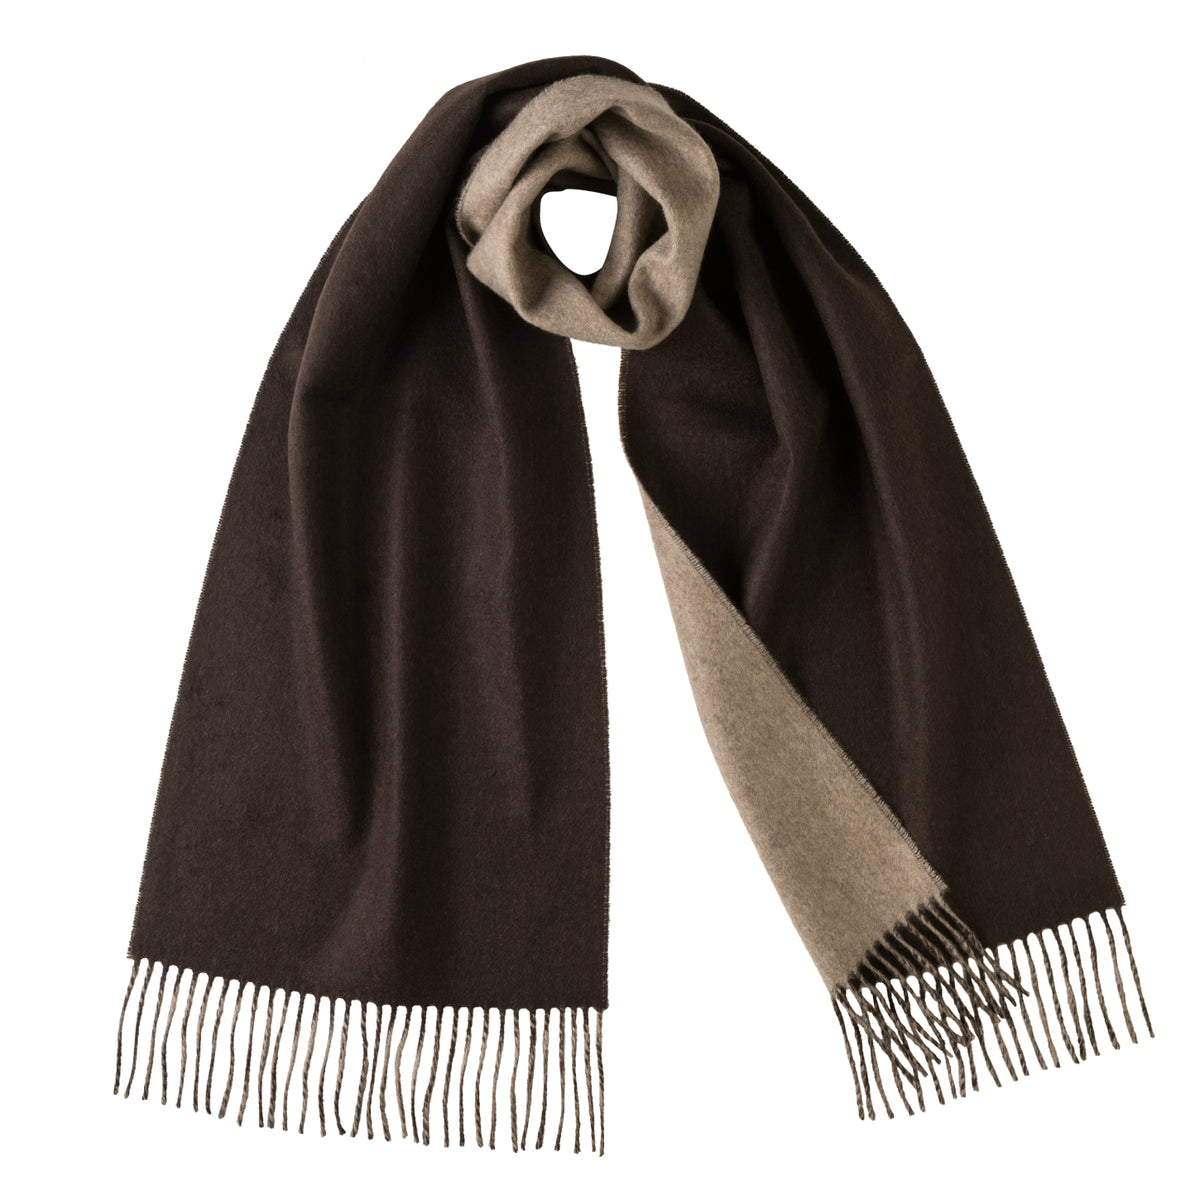 Johnsons of Elgin | Johnstons Cashmere | Brown Beige Reversible Cashmere Scarf | buy at The Cashmere Choice | London